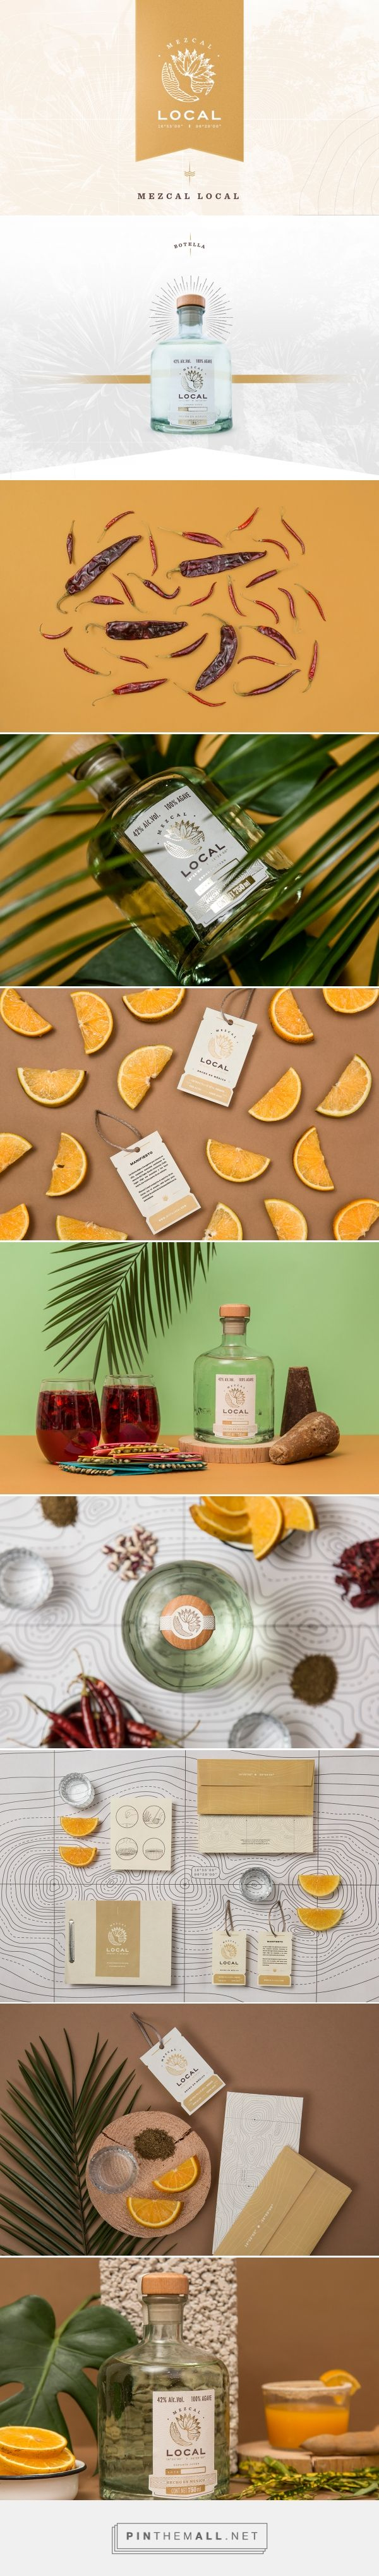 Mezcal Local Spirits Branding and Packaging by The Branding People | Fivestar Branding Agency – Design and Branding Agency & Curated Inspiration Gallery